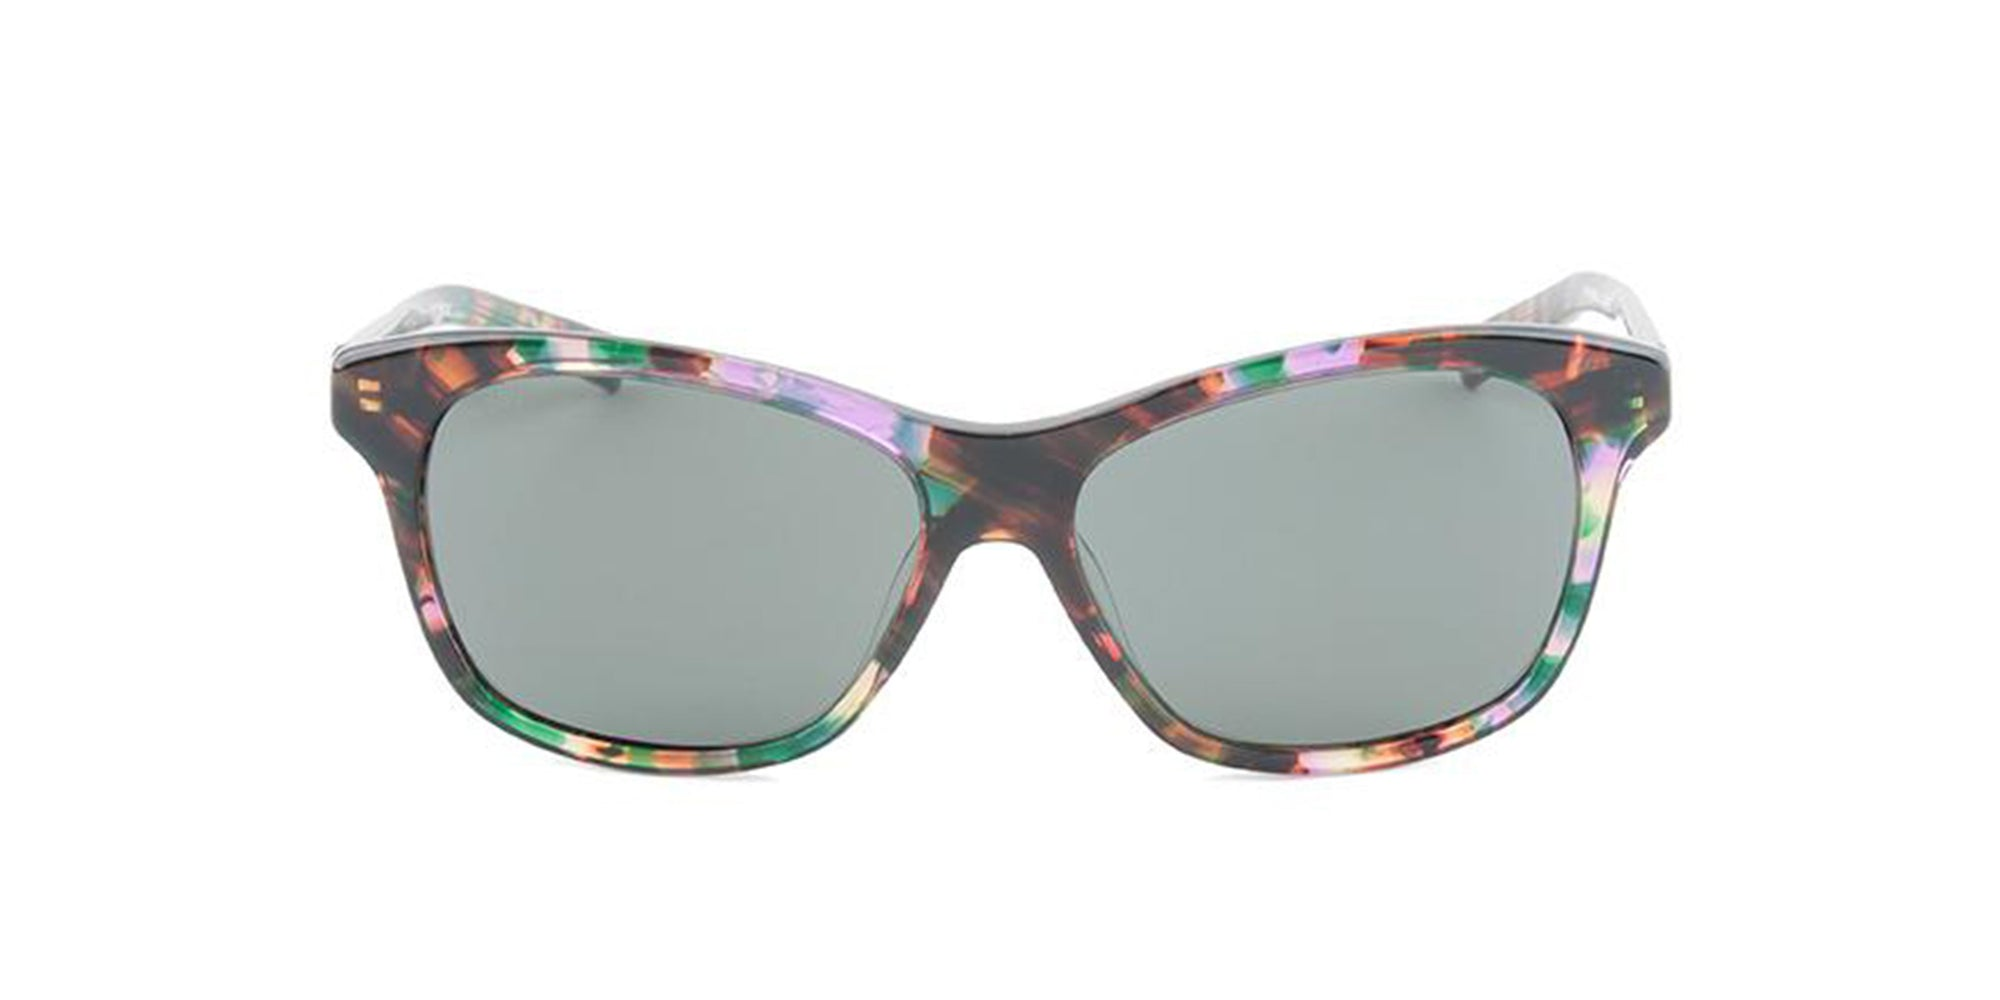 Costa Del Mar - Sarasota Tortoise/Green Polarized Rectangular Women Sunglasses-Sunglasses-Designer Eyes